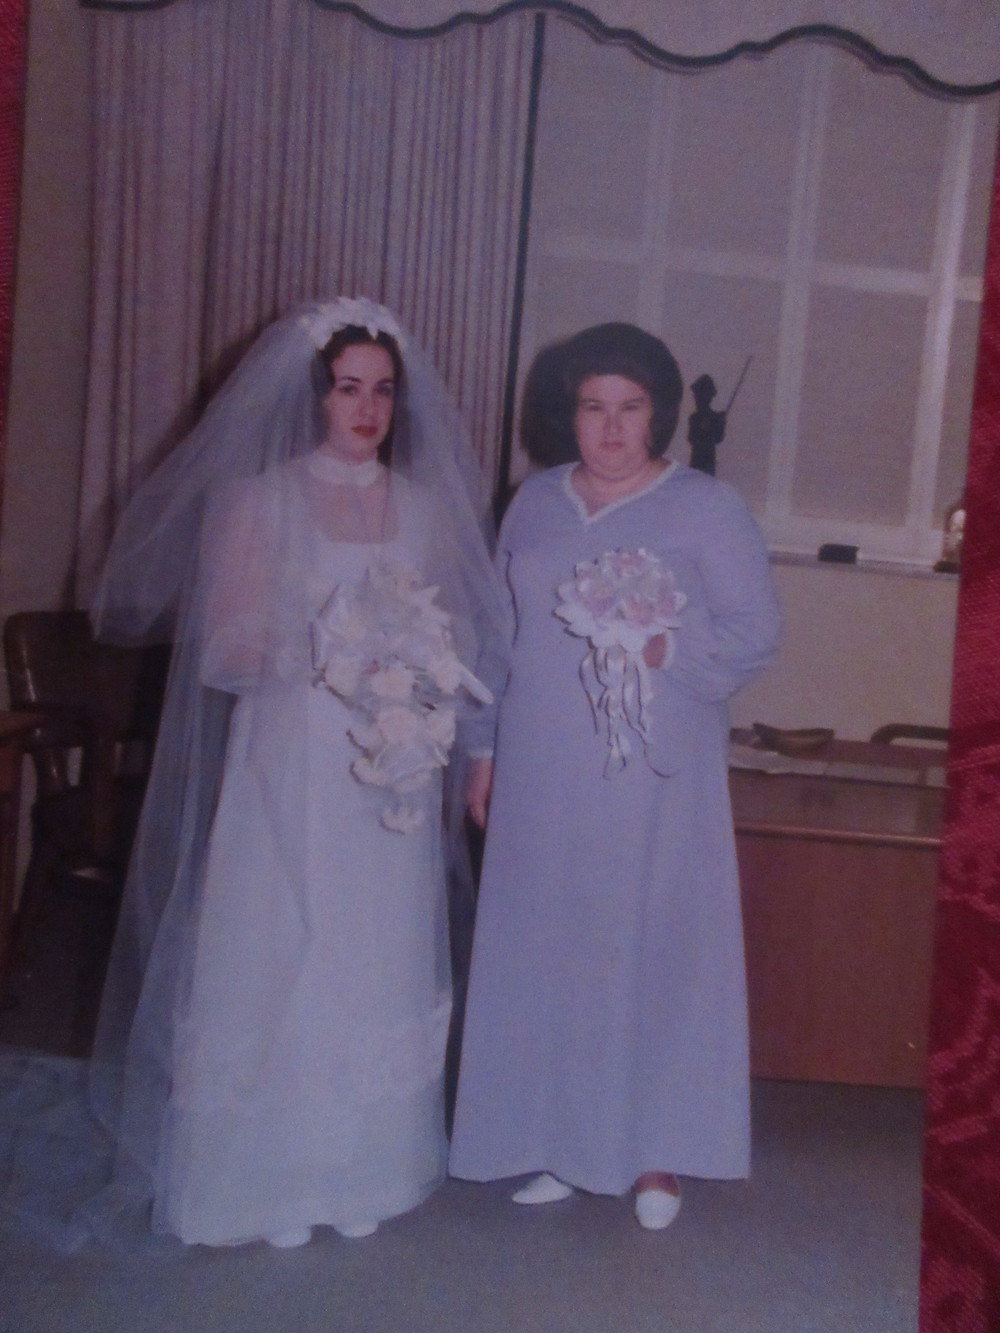 KATHY STORRIE & CAROLYN BURTON MY FRIEND & MAID OF HONOR WHO IS IN HEAVEN